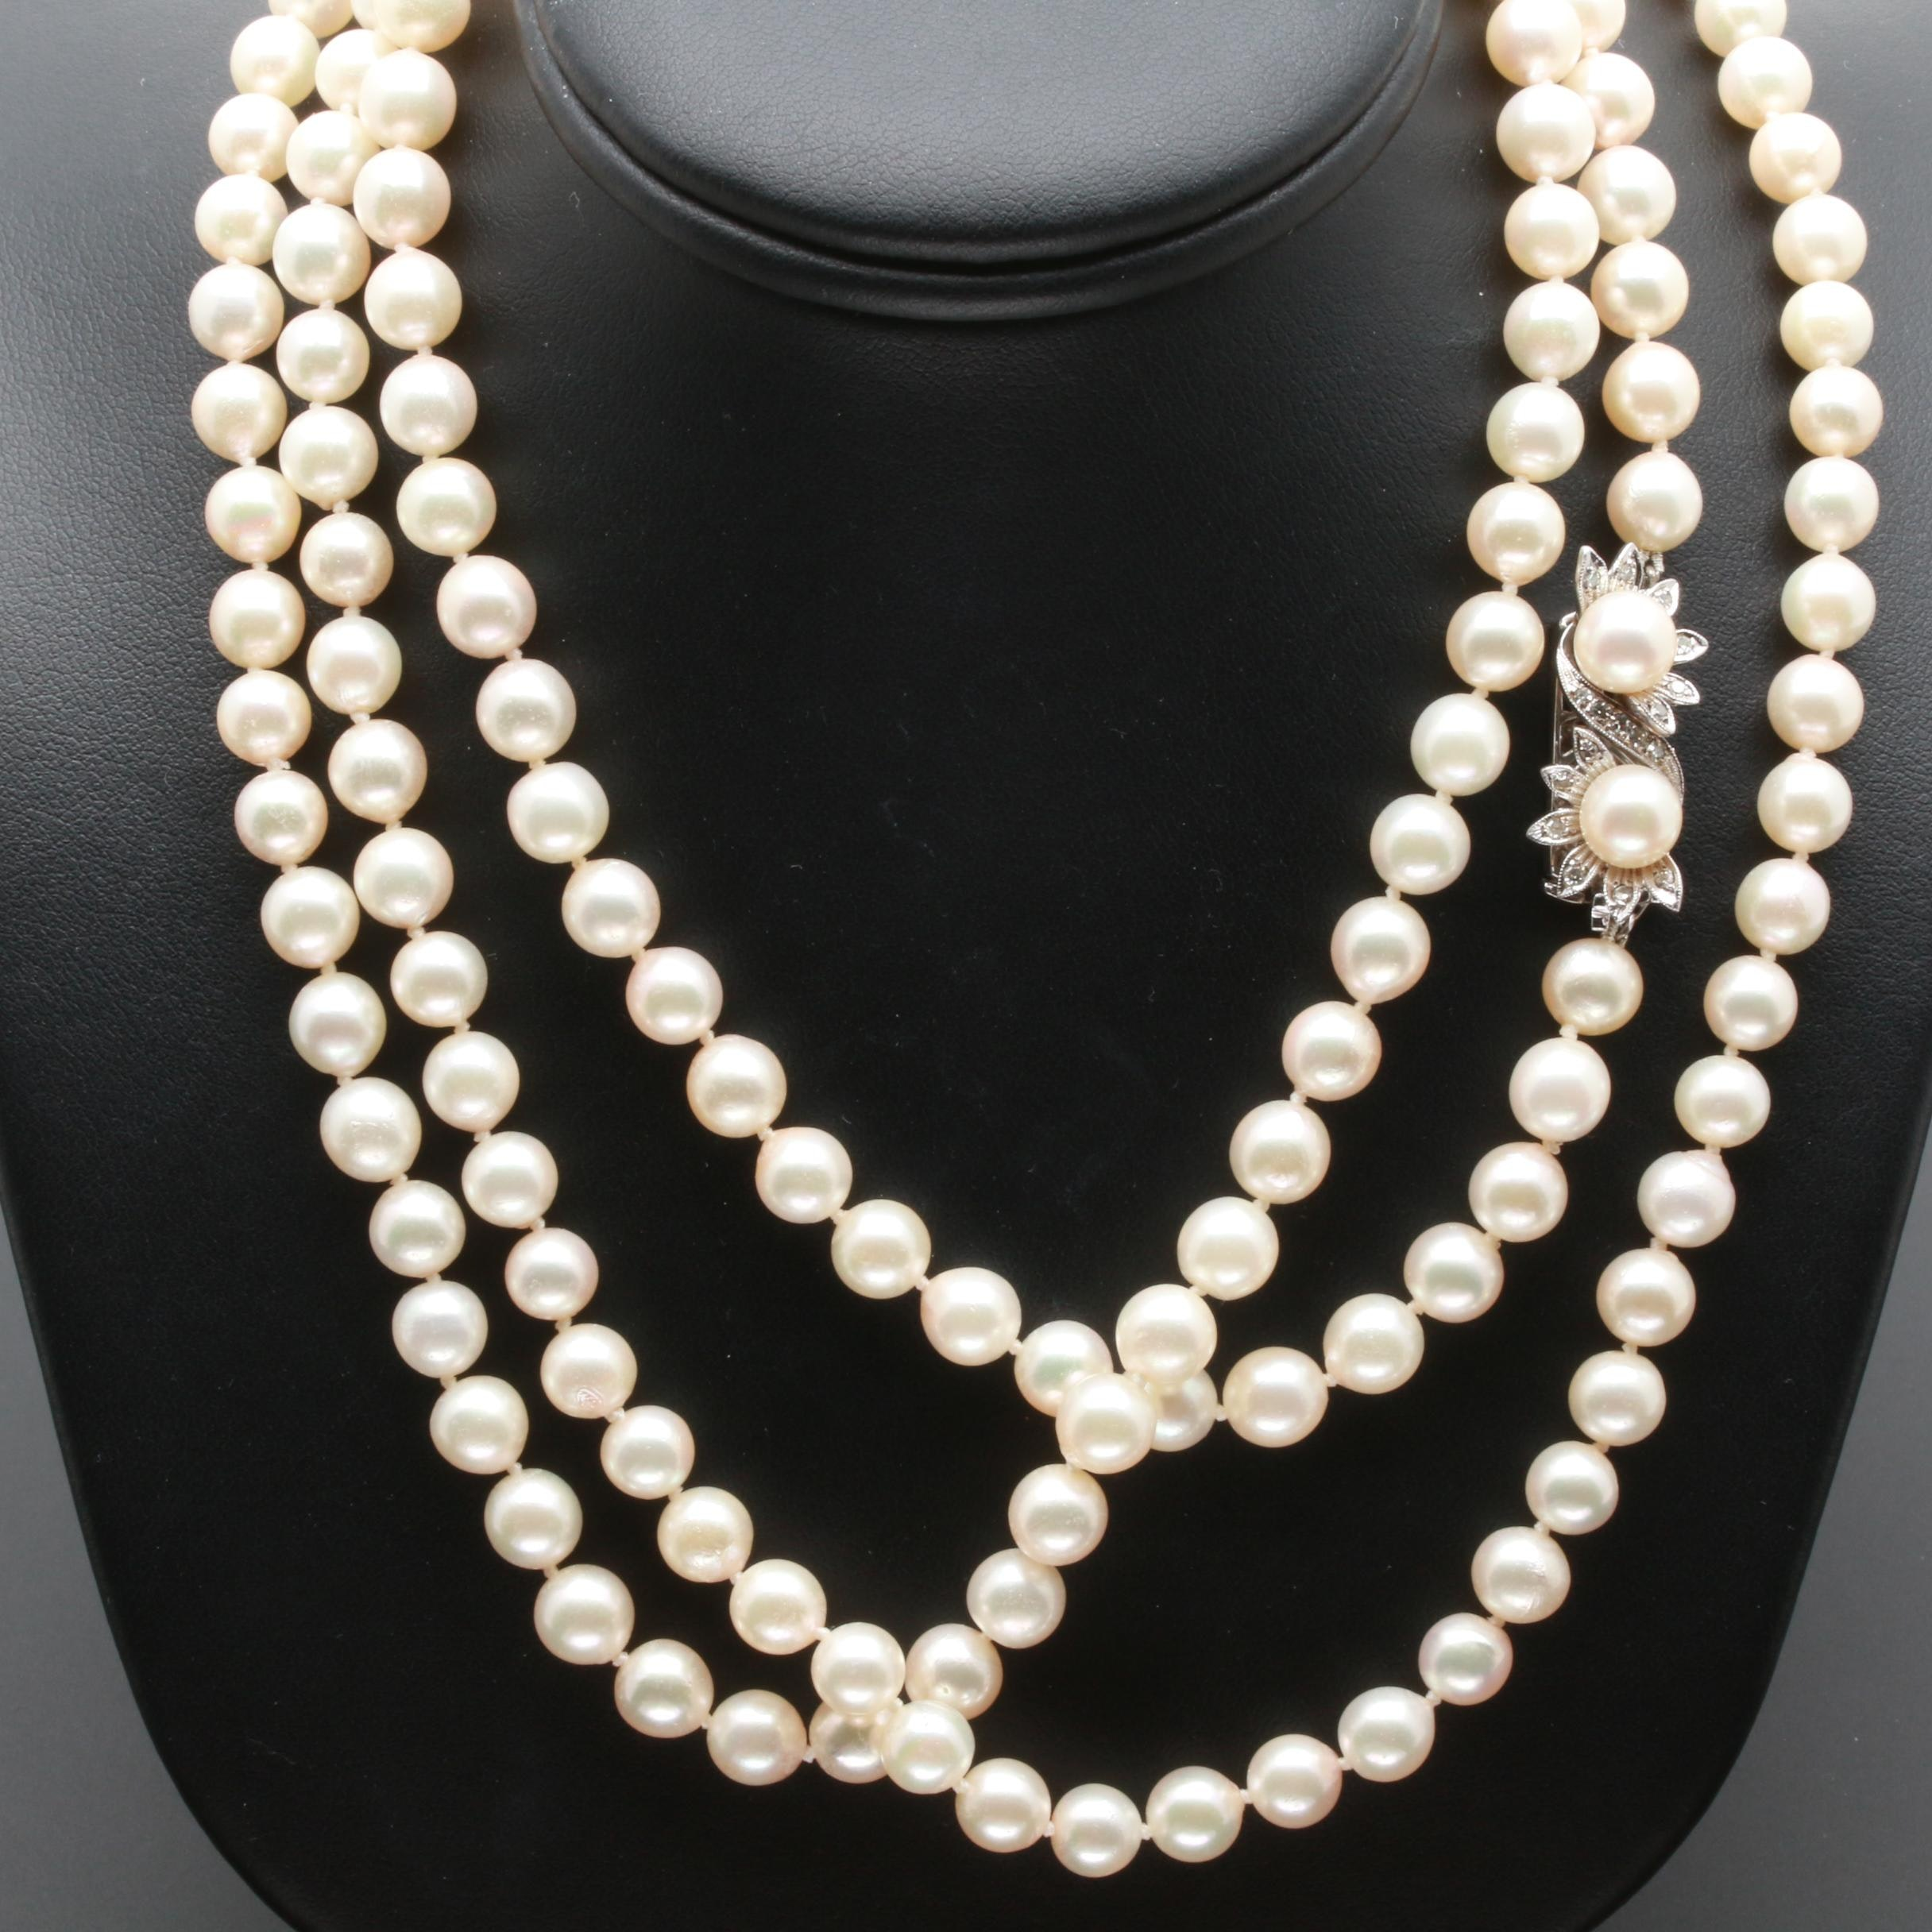 14K White Gold Diamond and Cultured Pearl Beaded Necklace